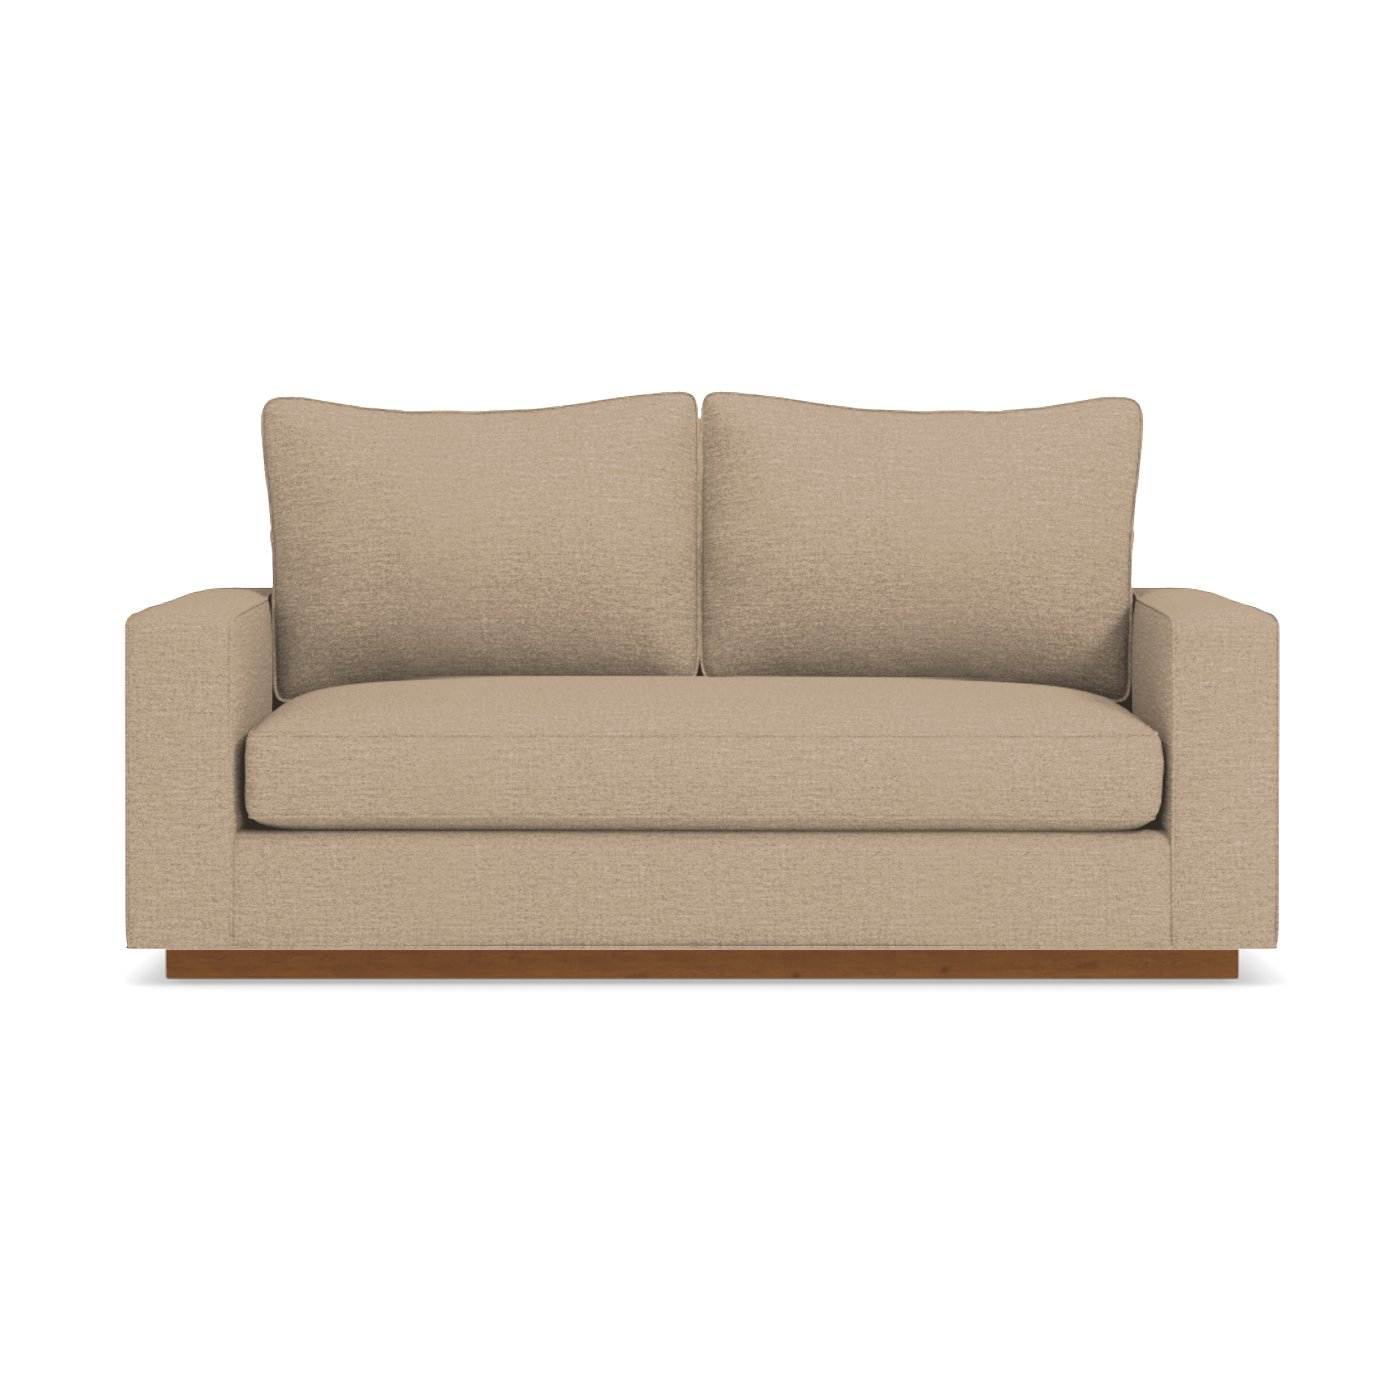 Harper Apartment Size Sleeper Sofa - Choice of Fabrics - Apt2B